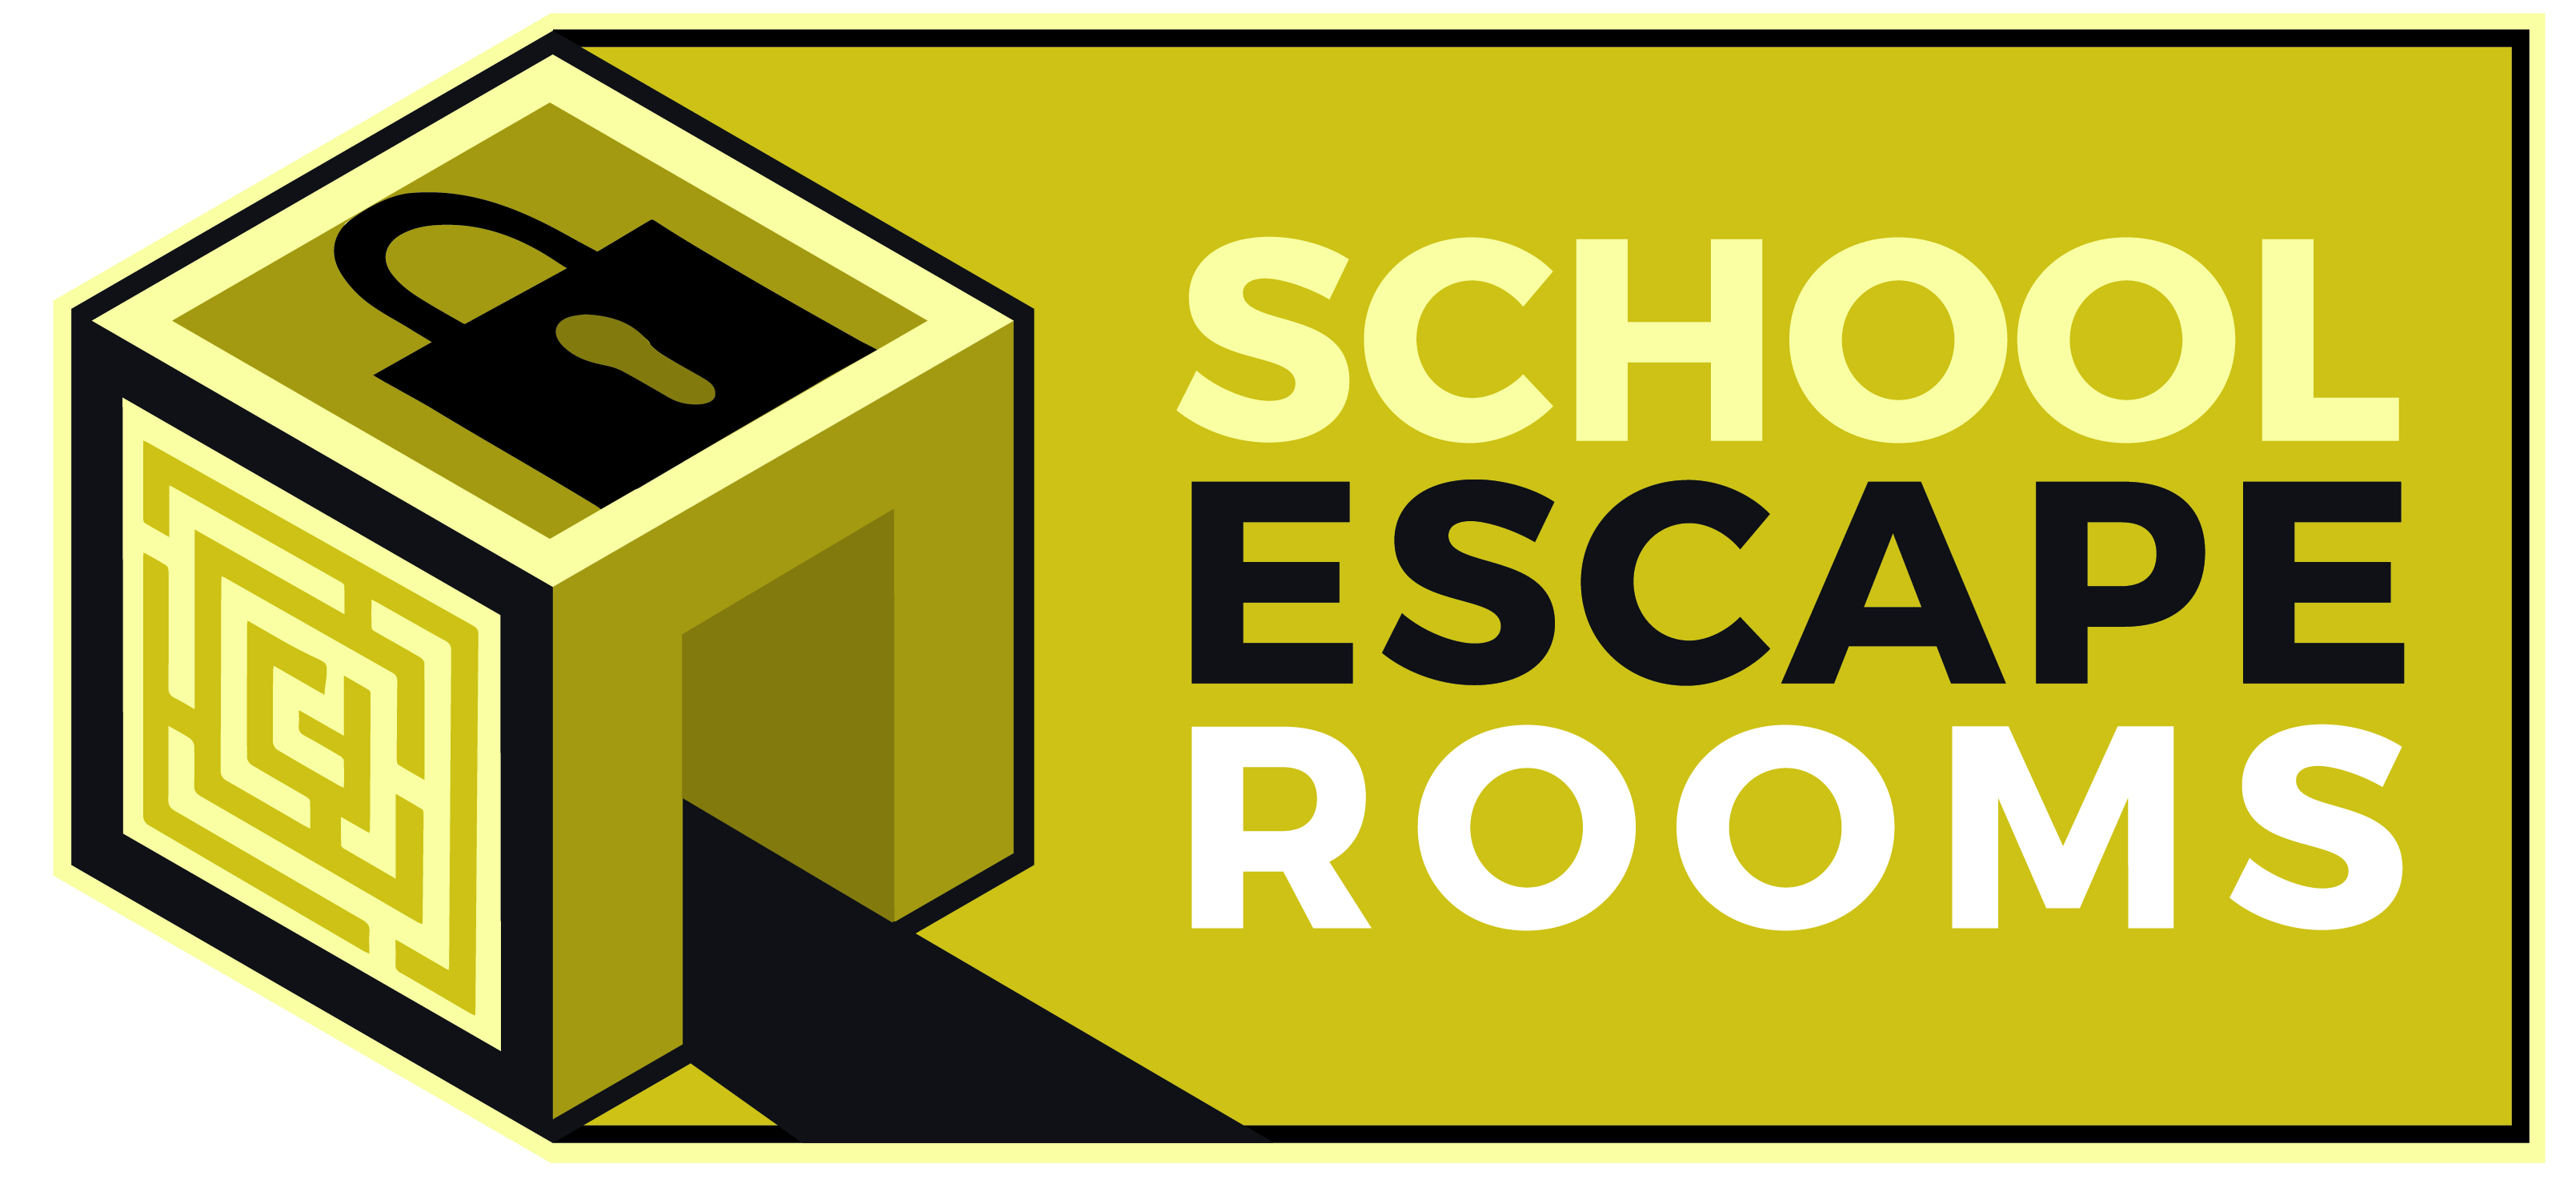 School Escape Rooms